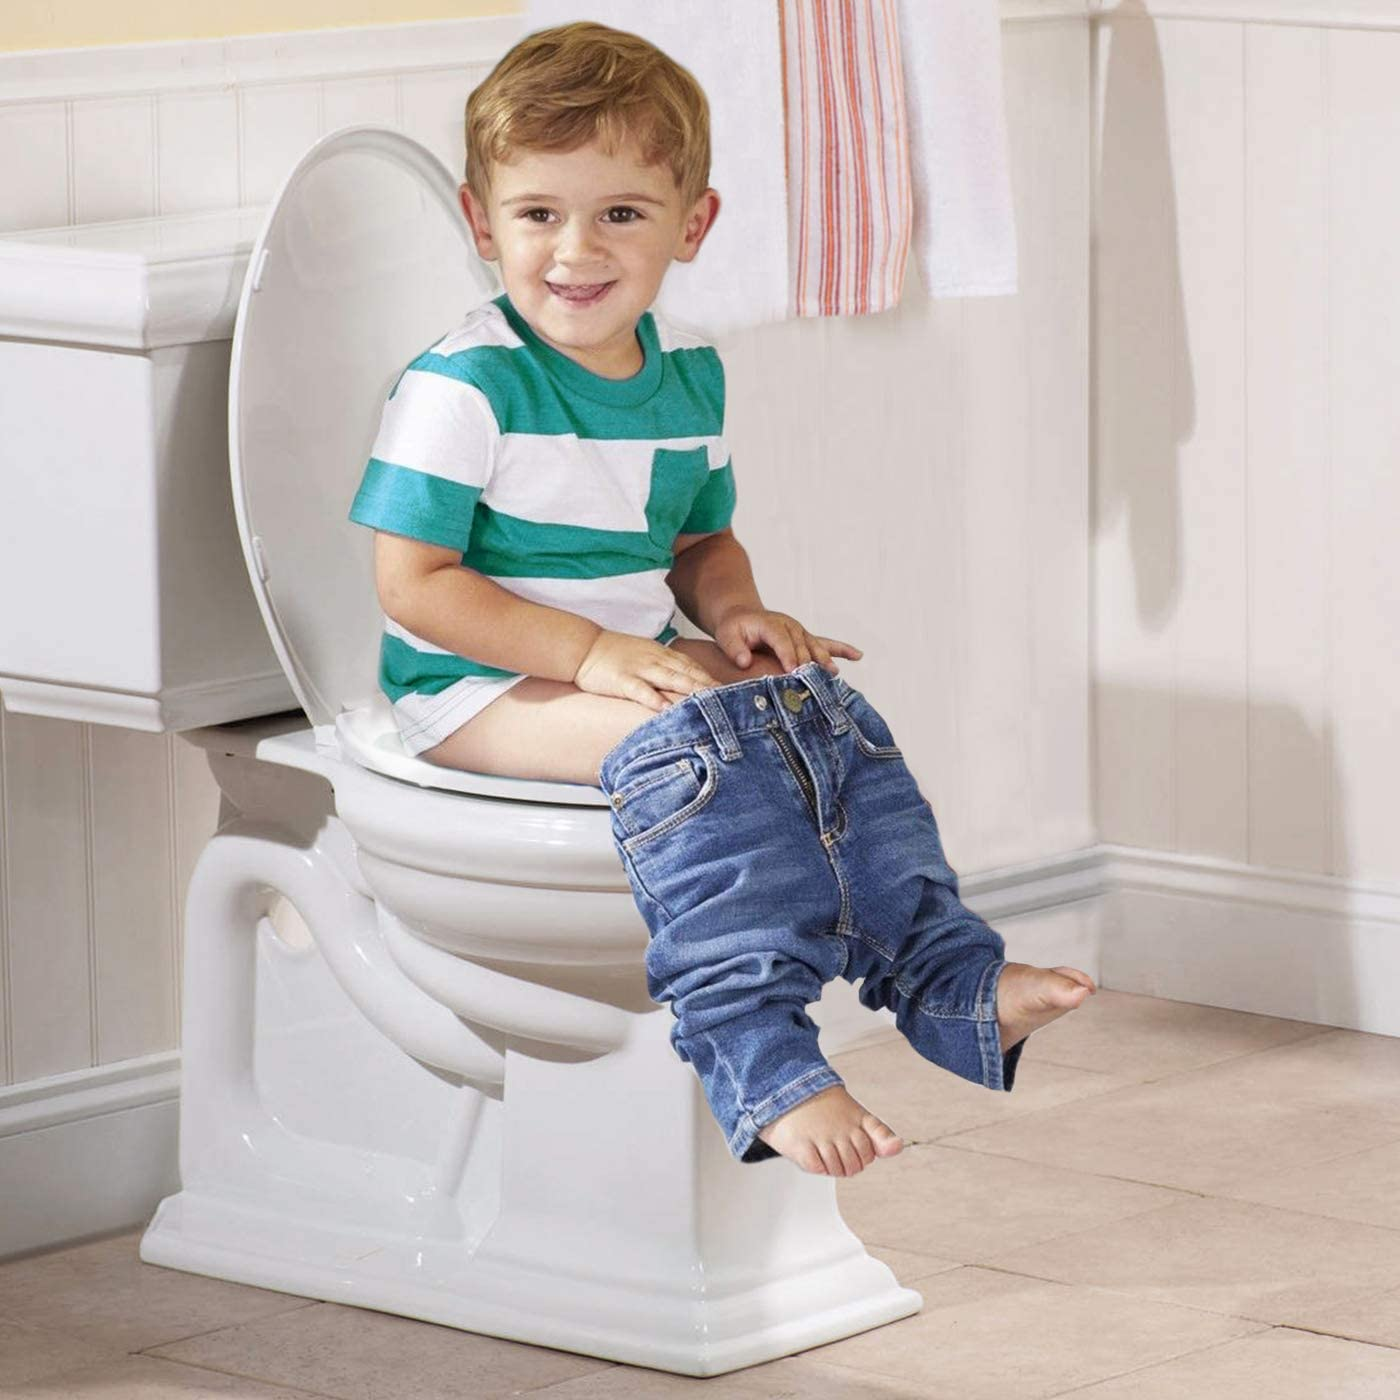 Space Saving Solution For Kids Potty Training Easy To Install Convertible Toilet Seat Potty Training Seat Ideal 2 in 1 Toilet Seat For Toddlers /& Adults Elongated White Free Soap Holder Included